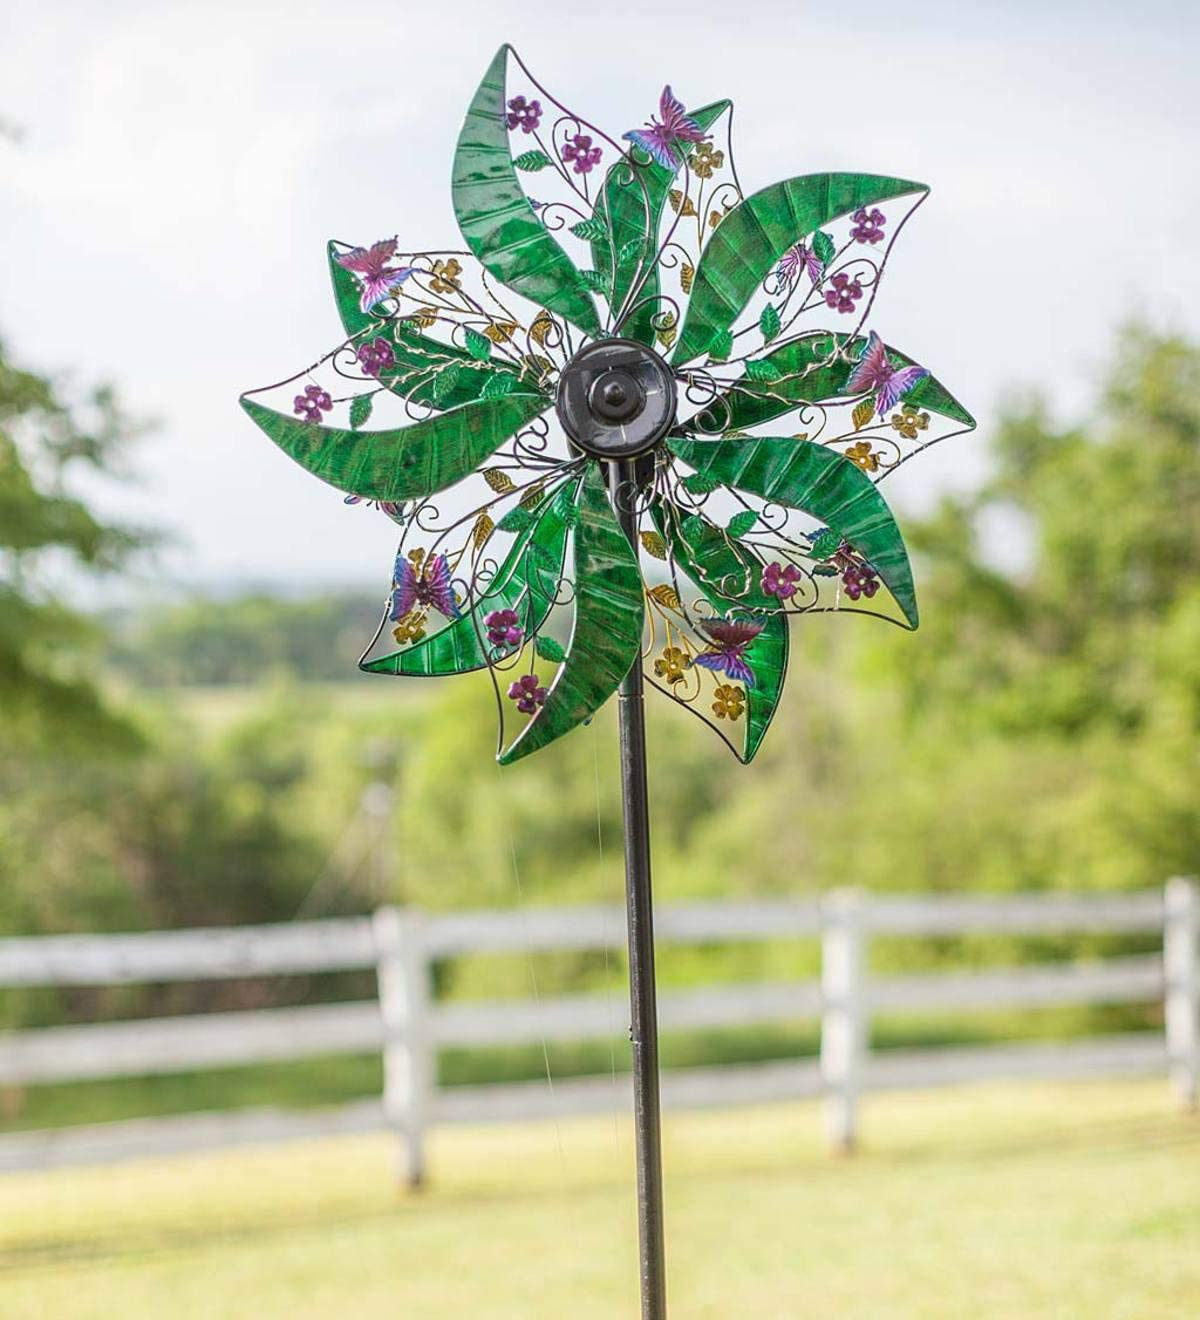 Amazon.com: Wind & Weather - Spinner solar (9.3 x 3.9 x 29.5 ...